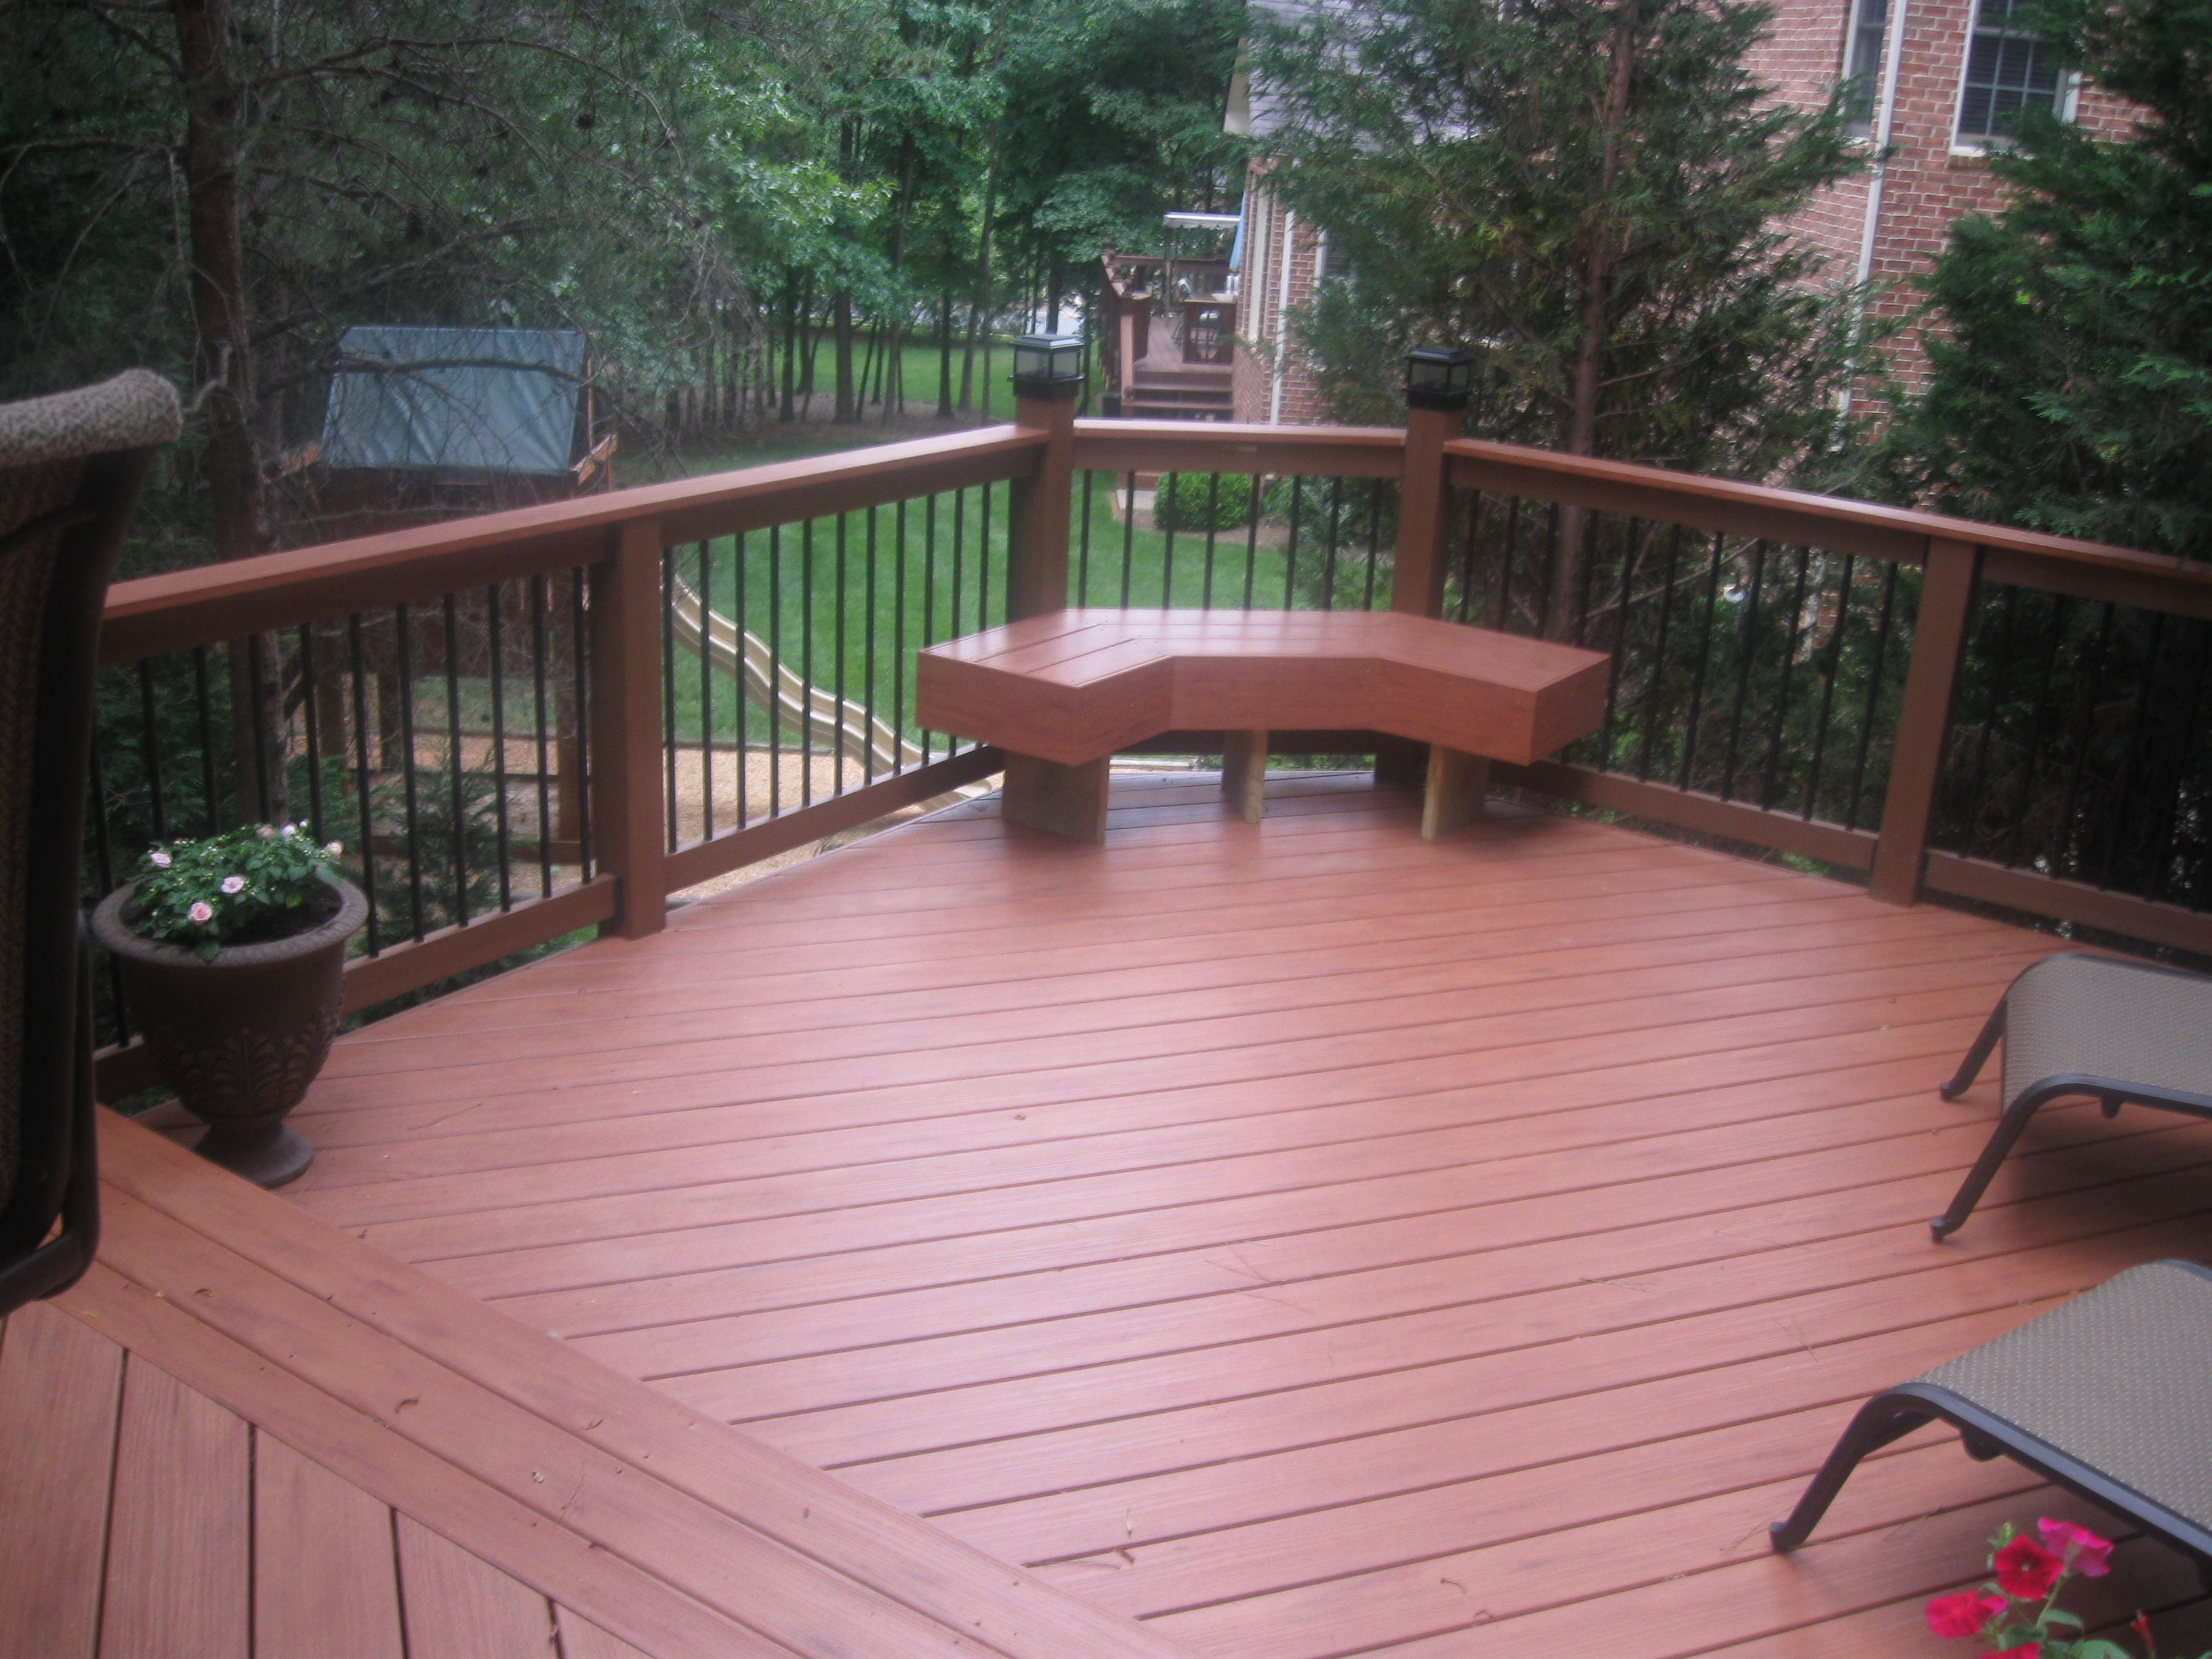 Trex Deck Design Ideas 1000 images about deck on pinterest decking decks and railings Composite Decking Walnut Color For Trendy Patio Home Decor Exterior Homes Pinterest Composite Decking Decking And Patio